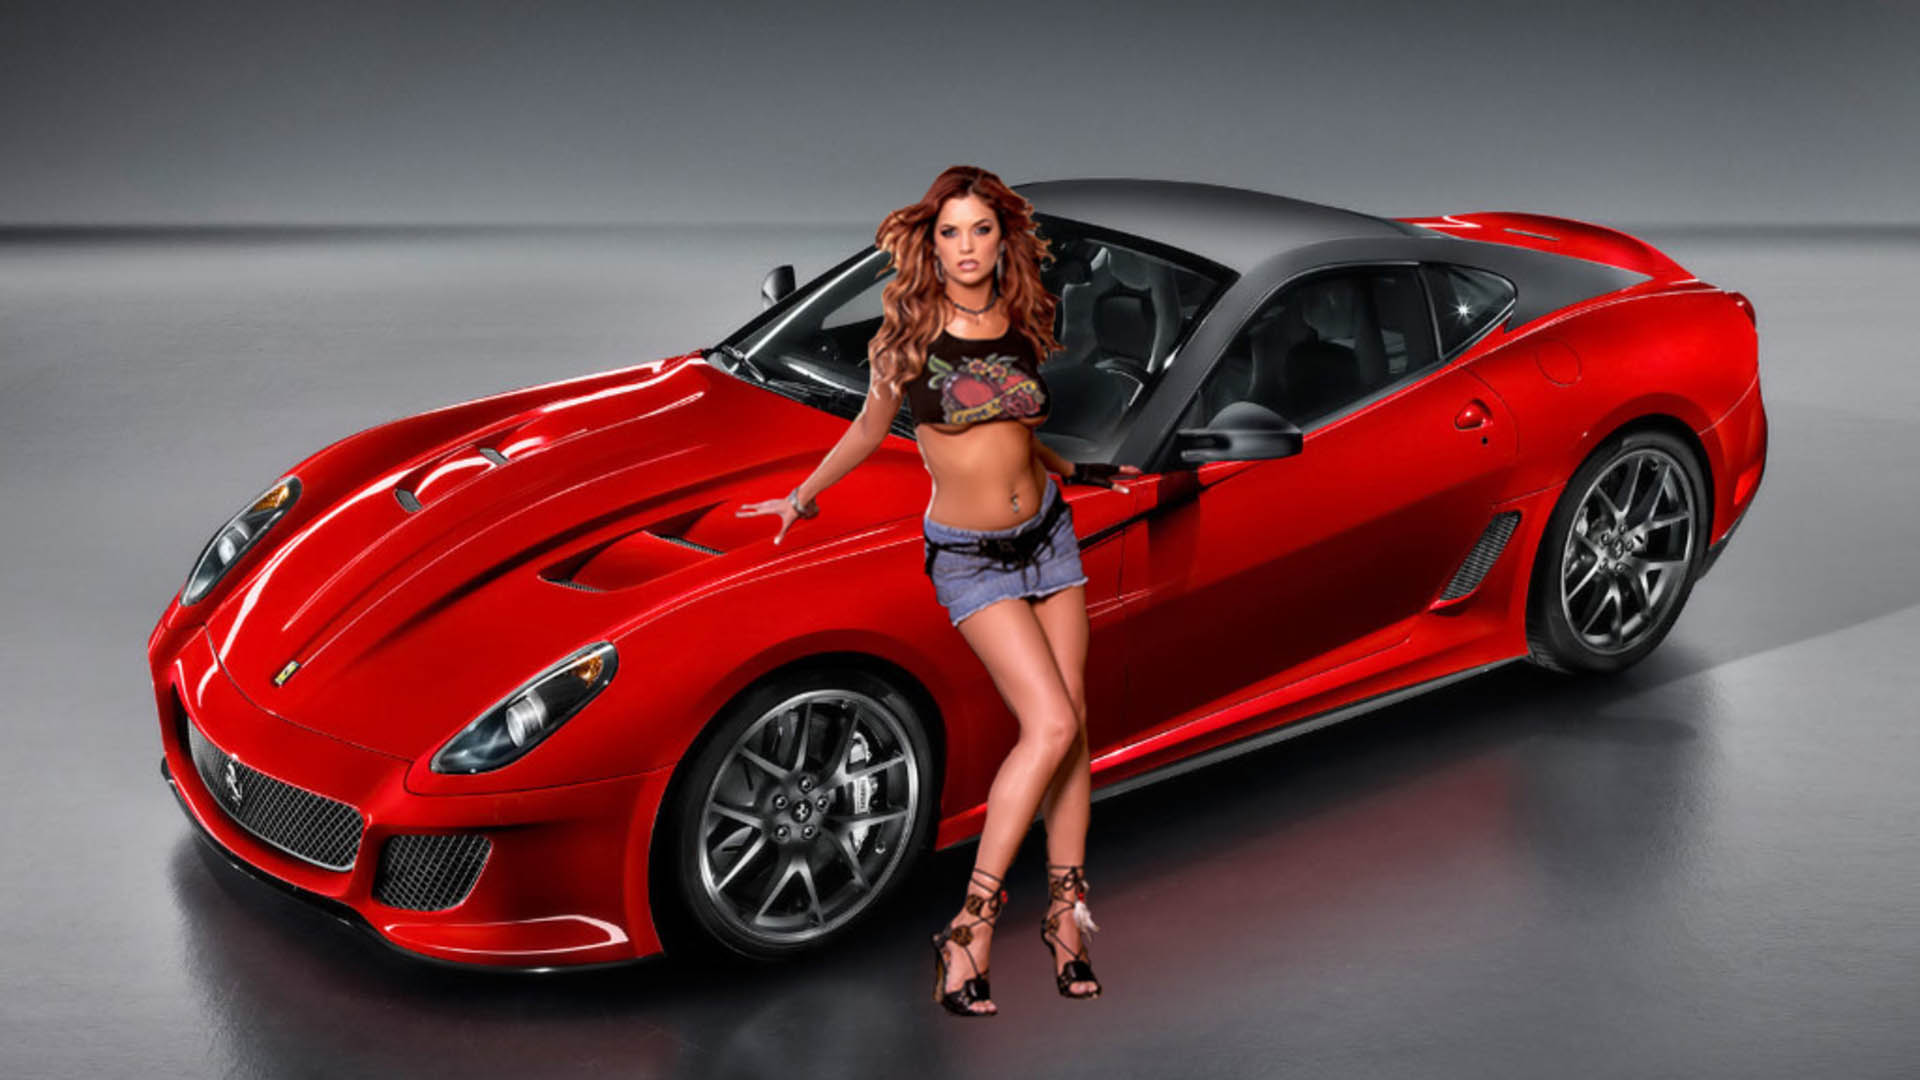 download Girl With Car Awesome Picture